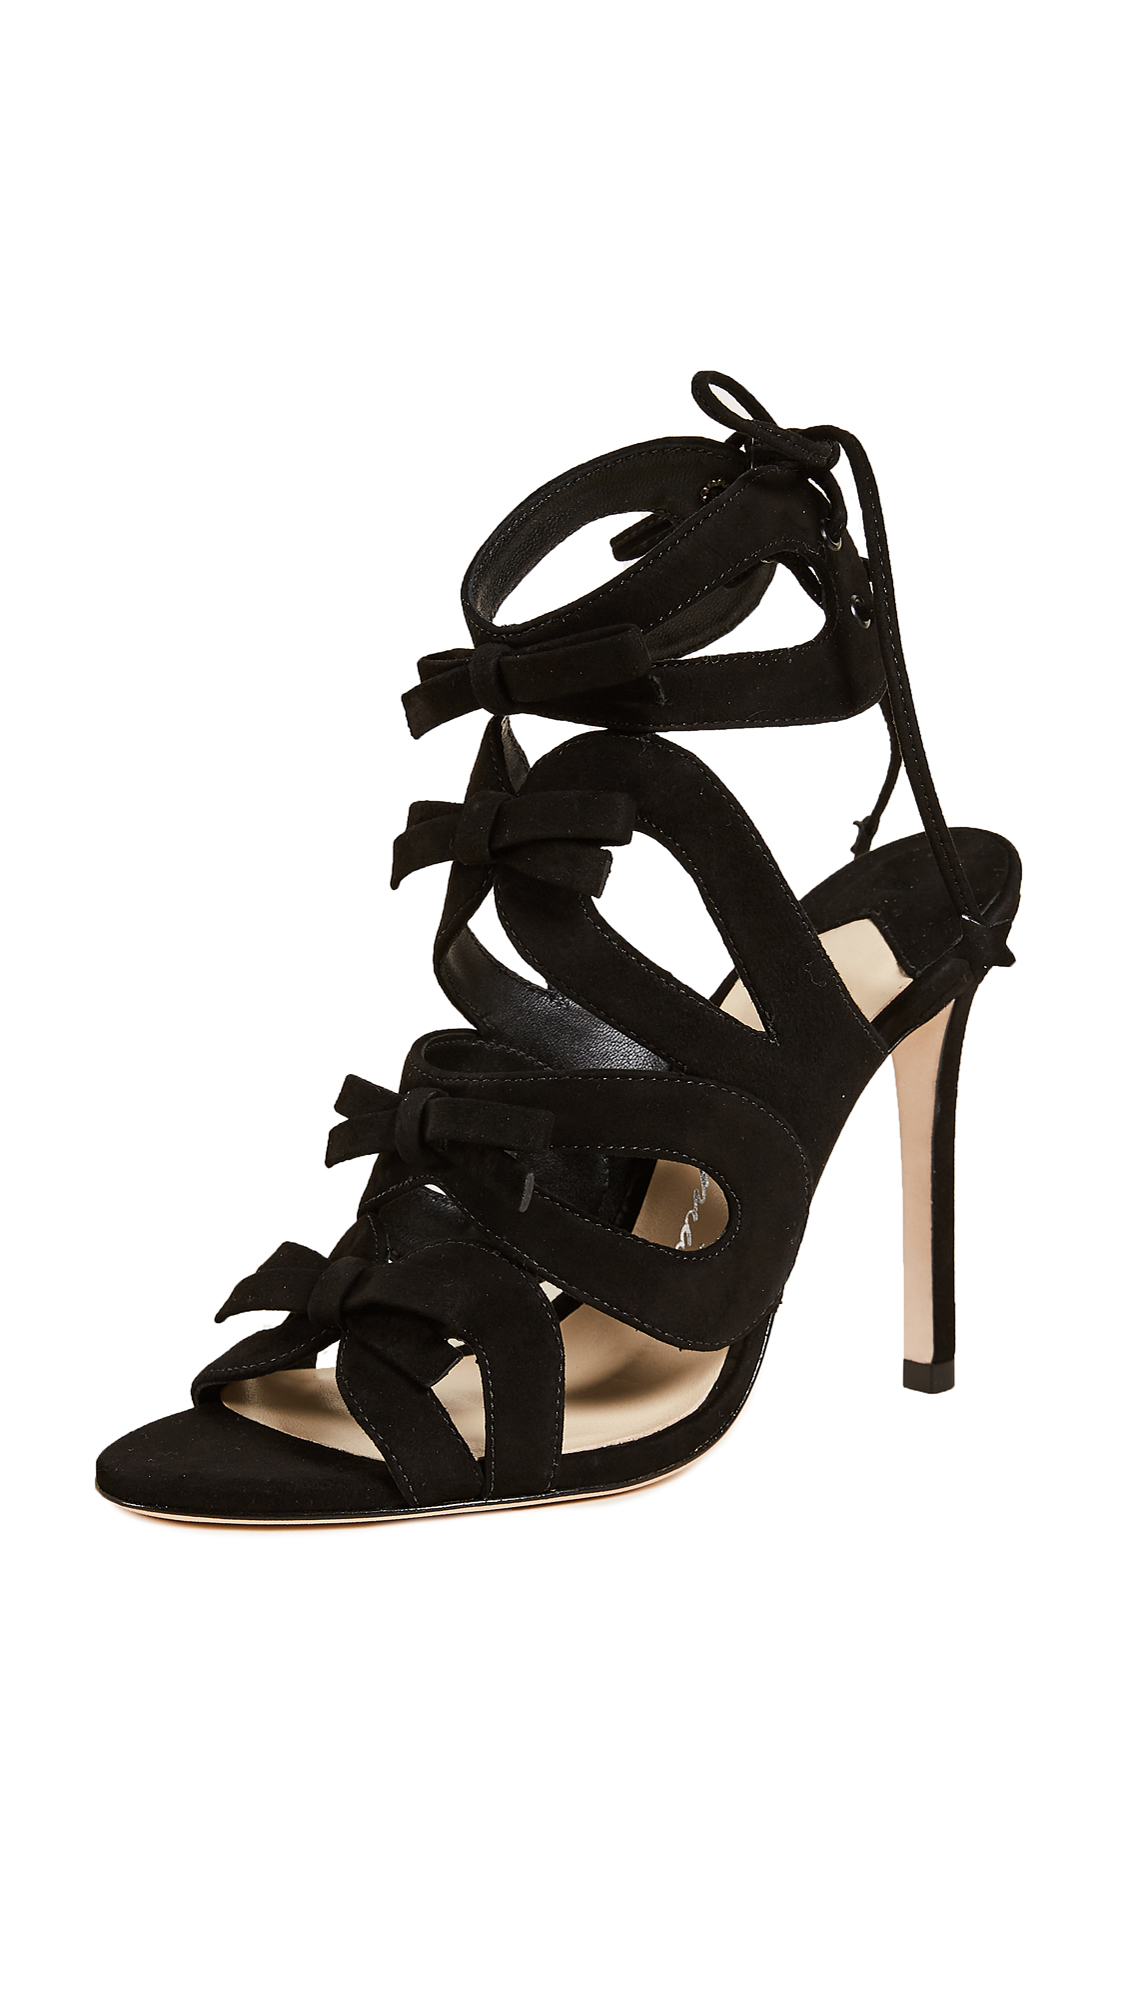 Isa Tapia Wes Sandal Pumps - Black